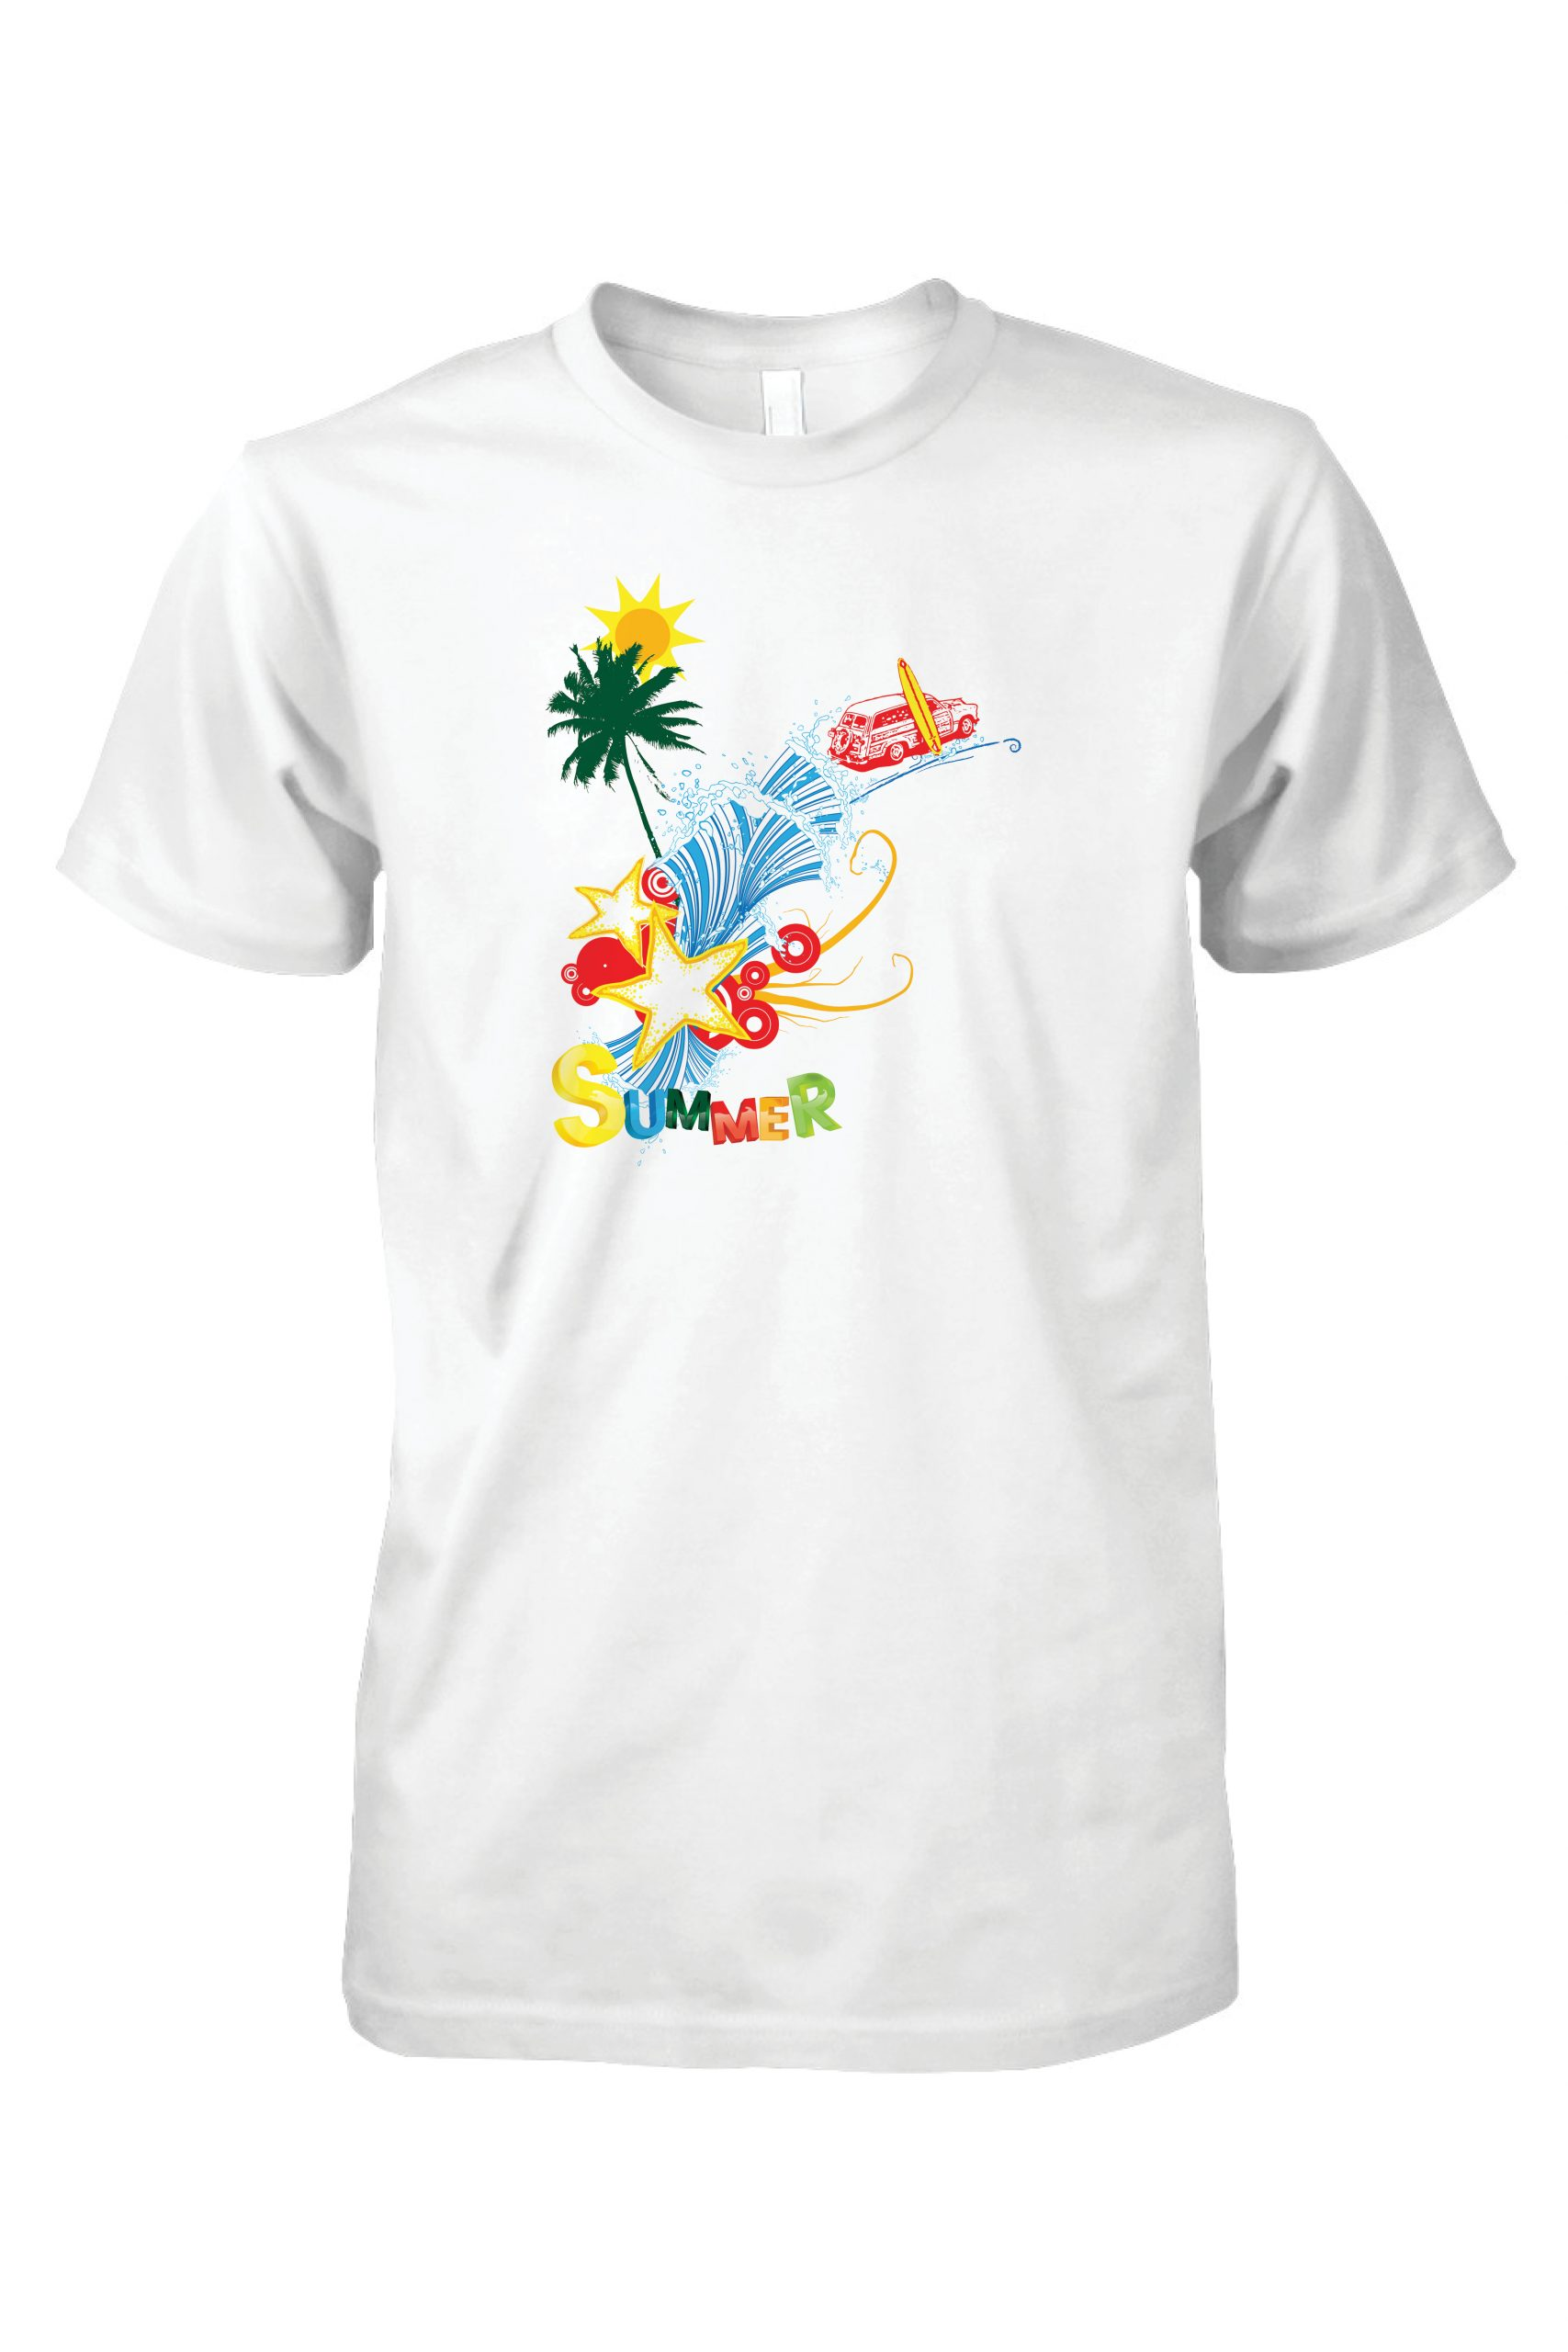 Affordable quality summer t-shirt print.